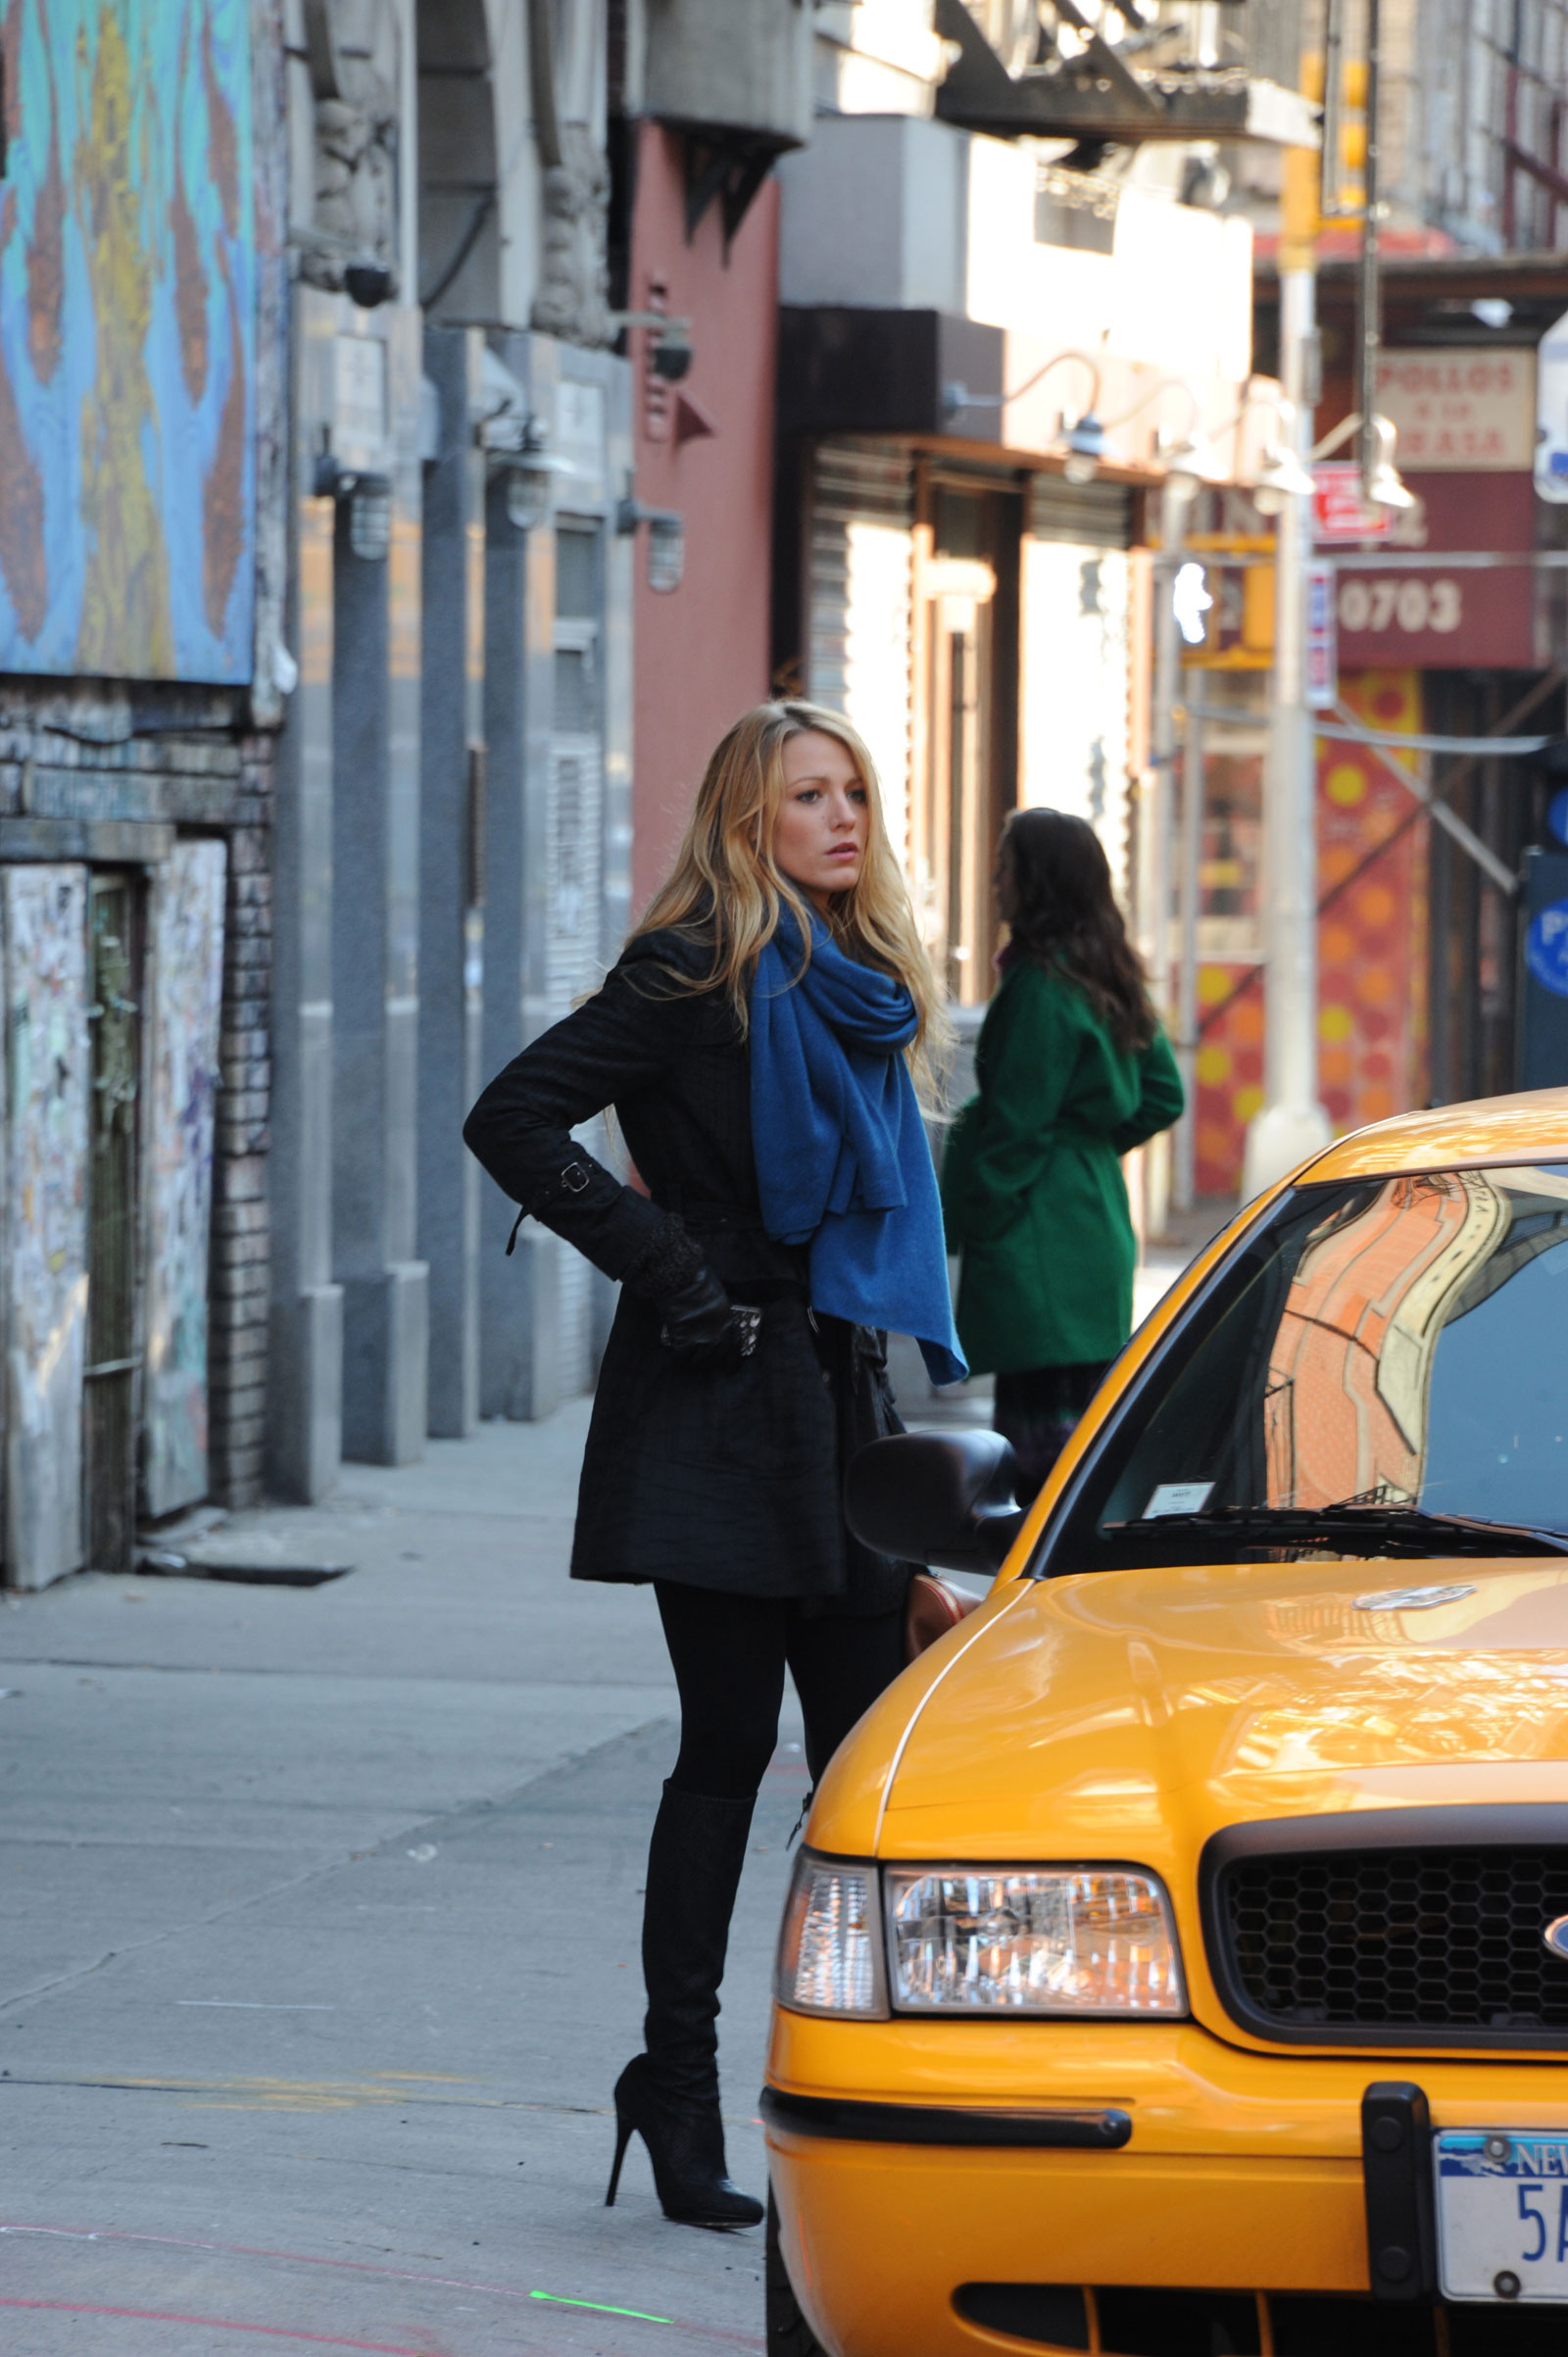 blake lively at the gossip girl set in new york - hawtcelebs